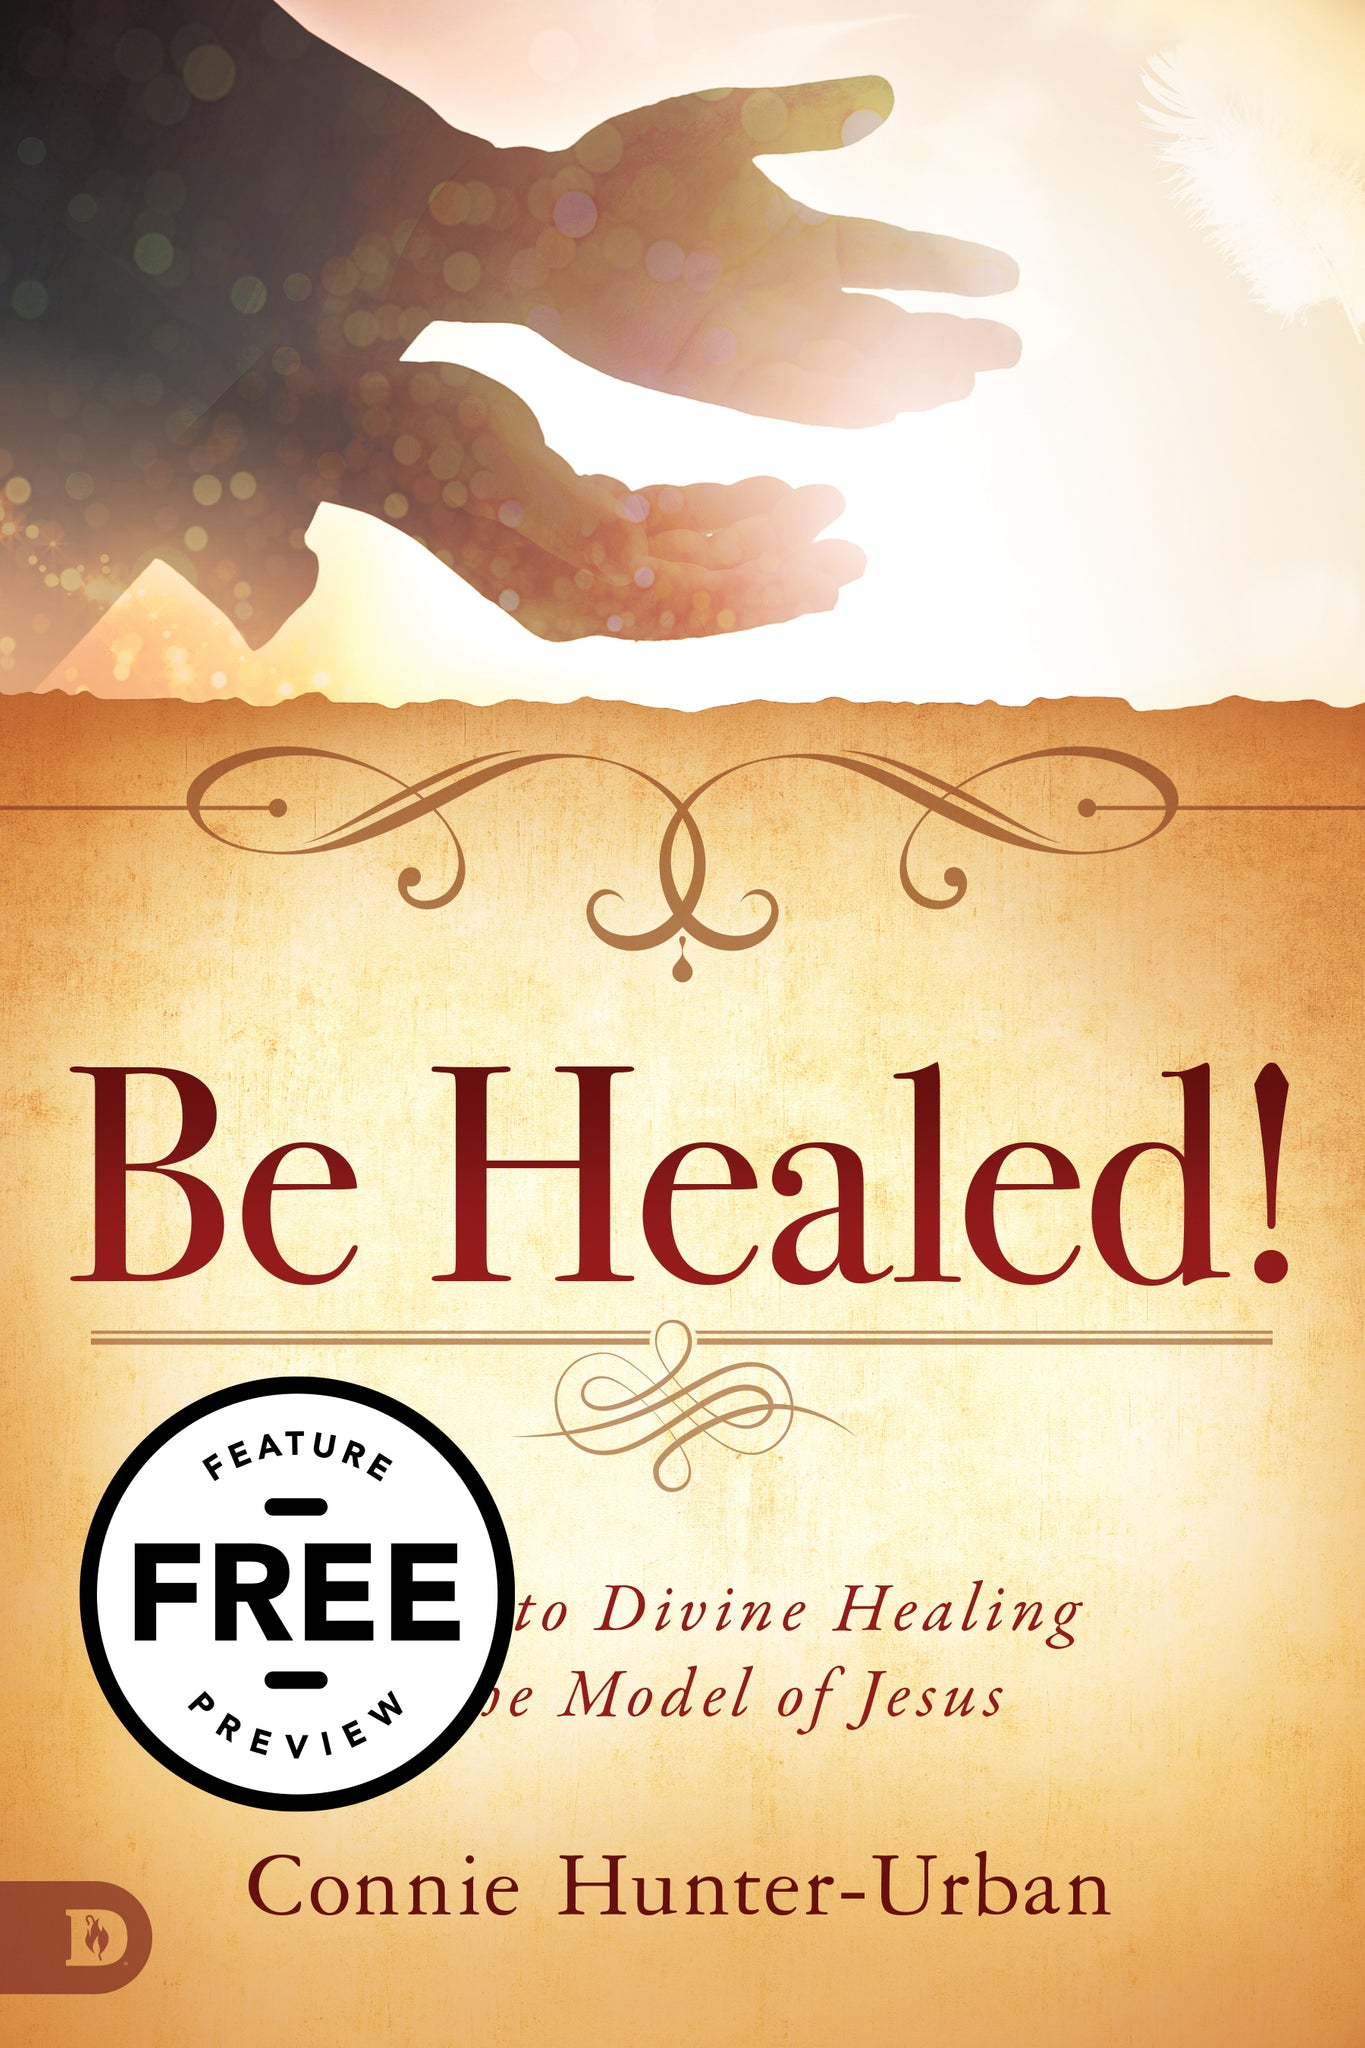 Be Healed!: Secrets to Divine Healing in the Model of Jesus Feature Message (PDF Download)